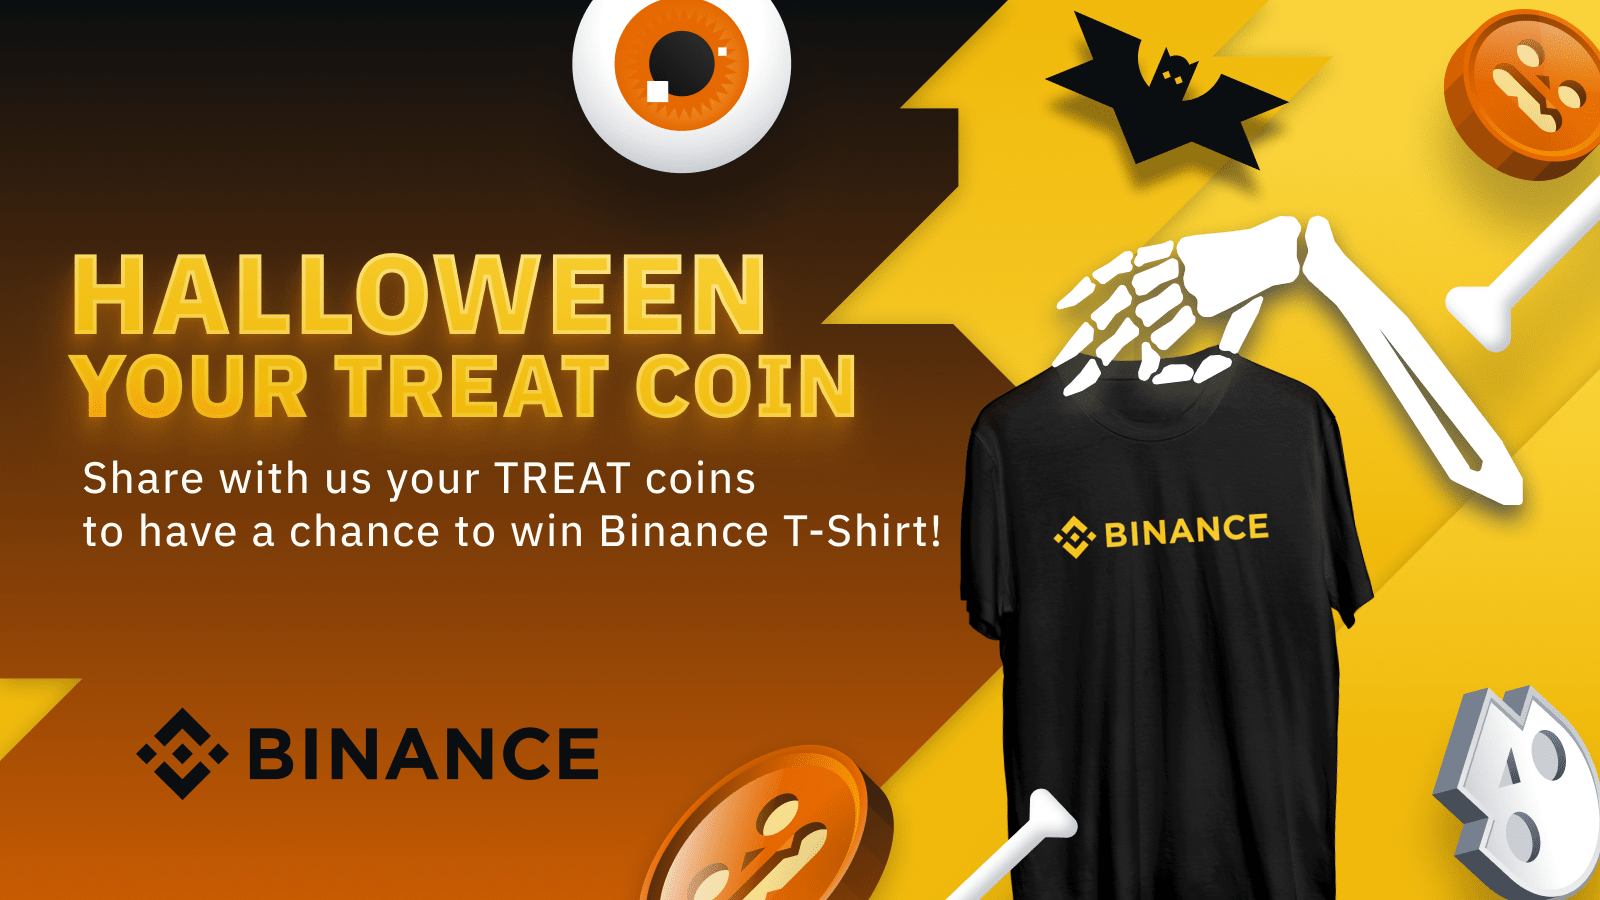 Halloween Your Treat Coin! : Win Binance Special Giveaway for Cambodia, Laos and Myanmar!